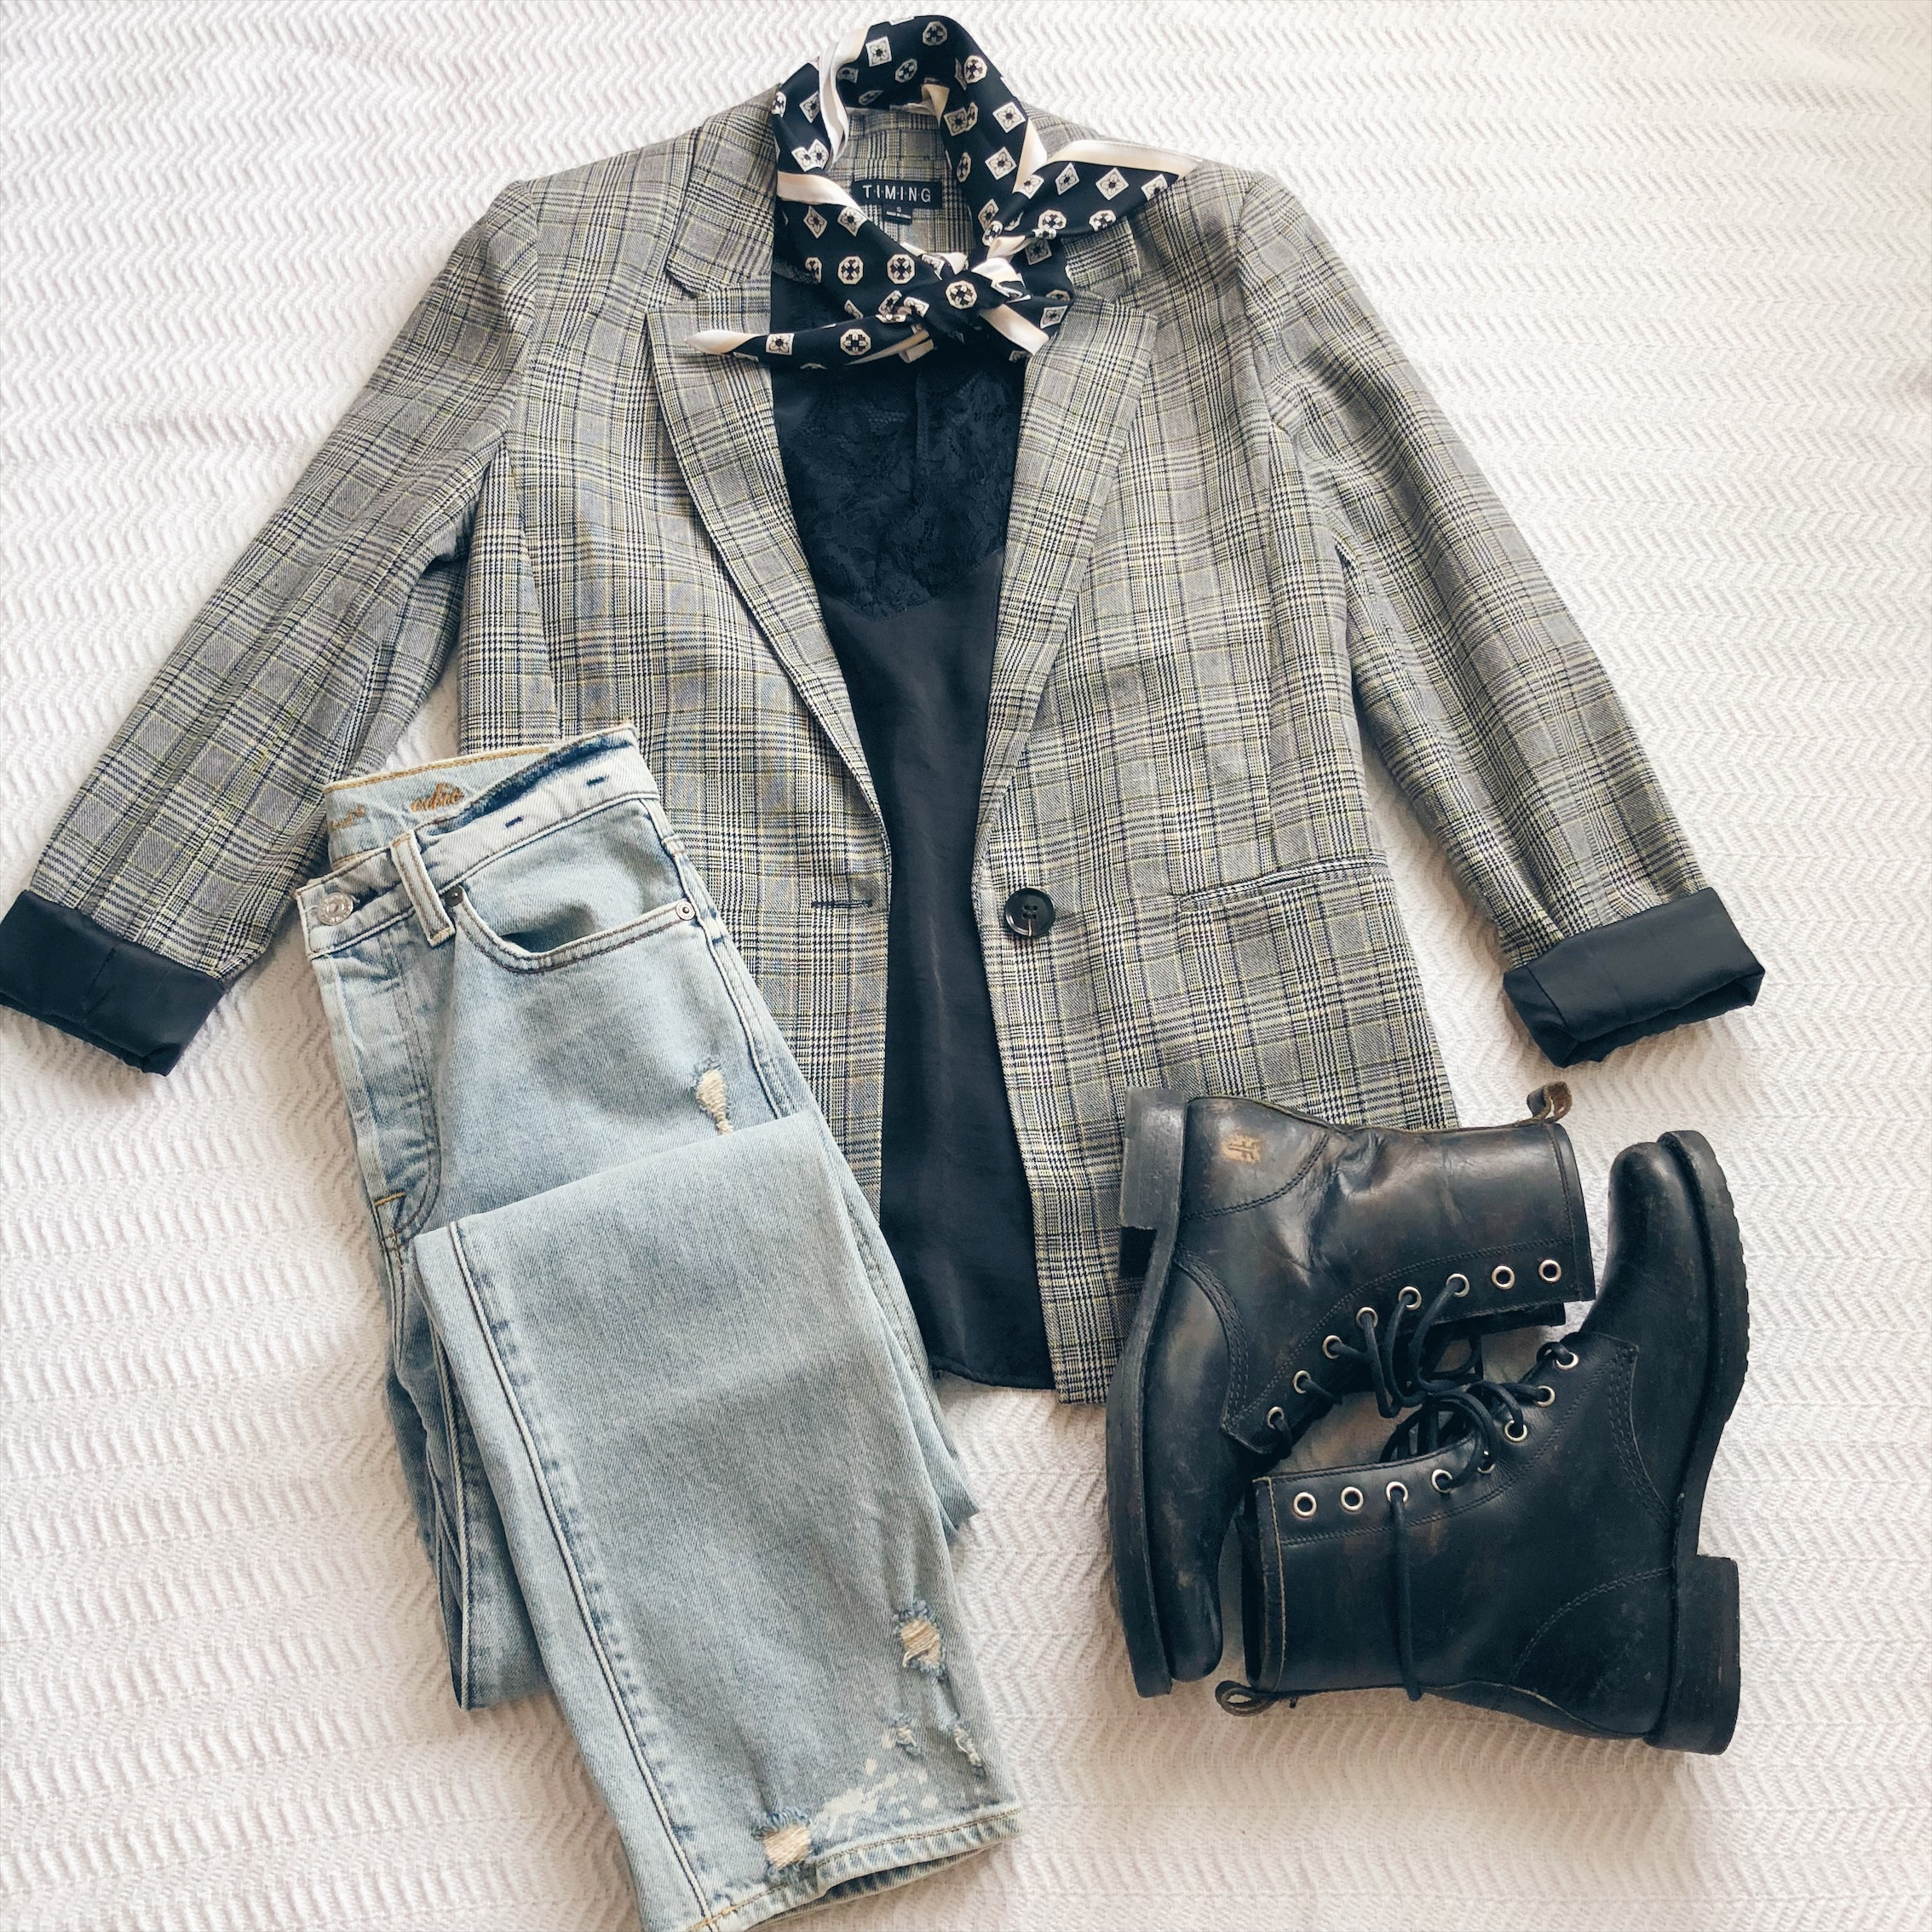 Europe Packing List by popular Indianapolis fashion blogger, Trendy in Indy